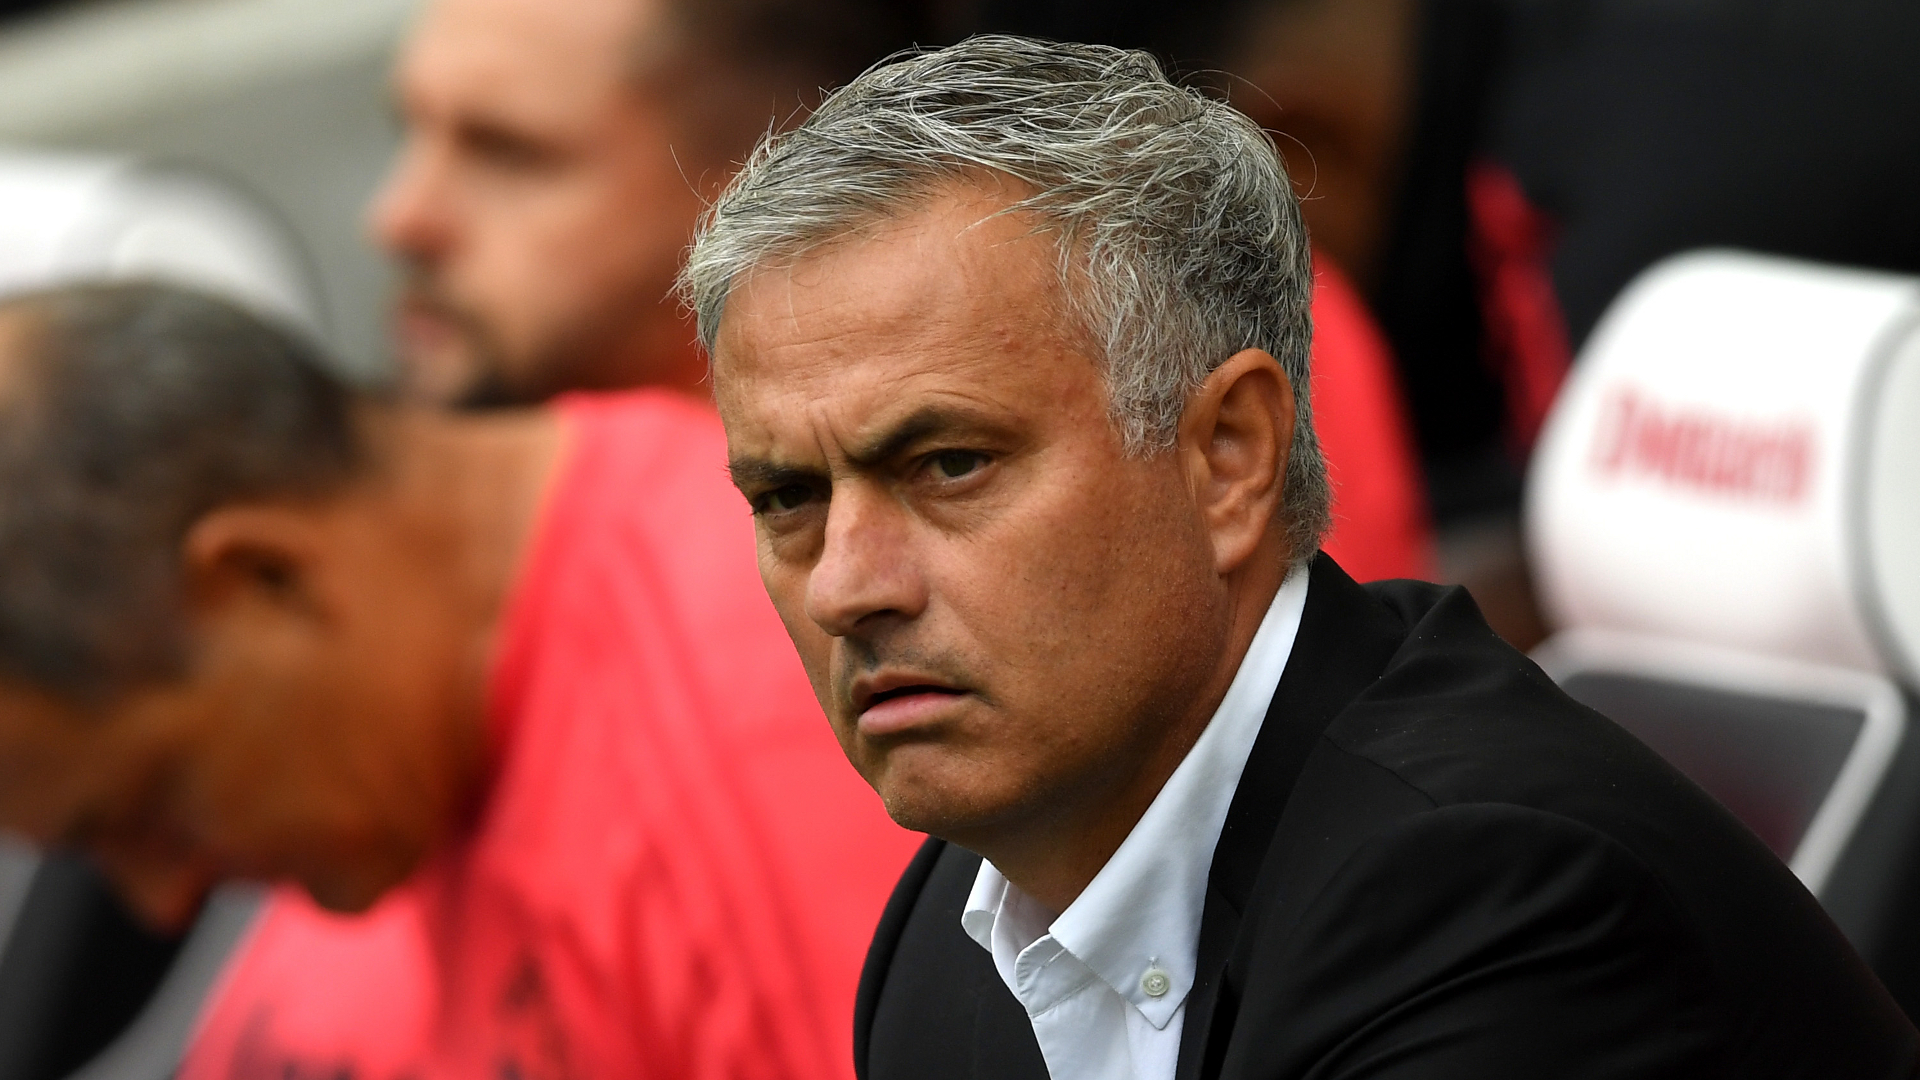 Jose Mourinho Ends 'Difficult Week' With Bizarrely Brief Press Conference